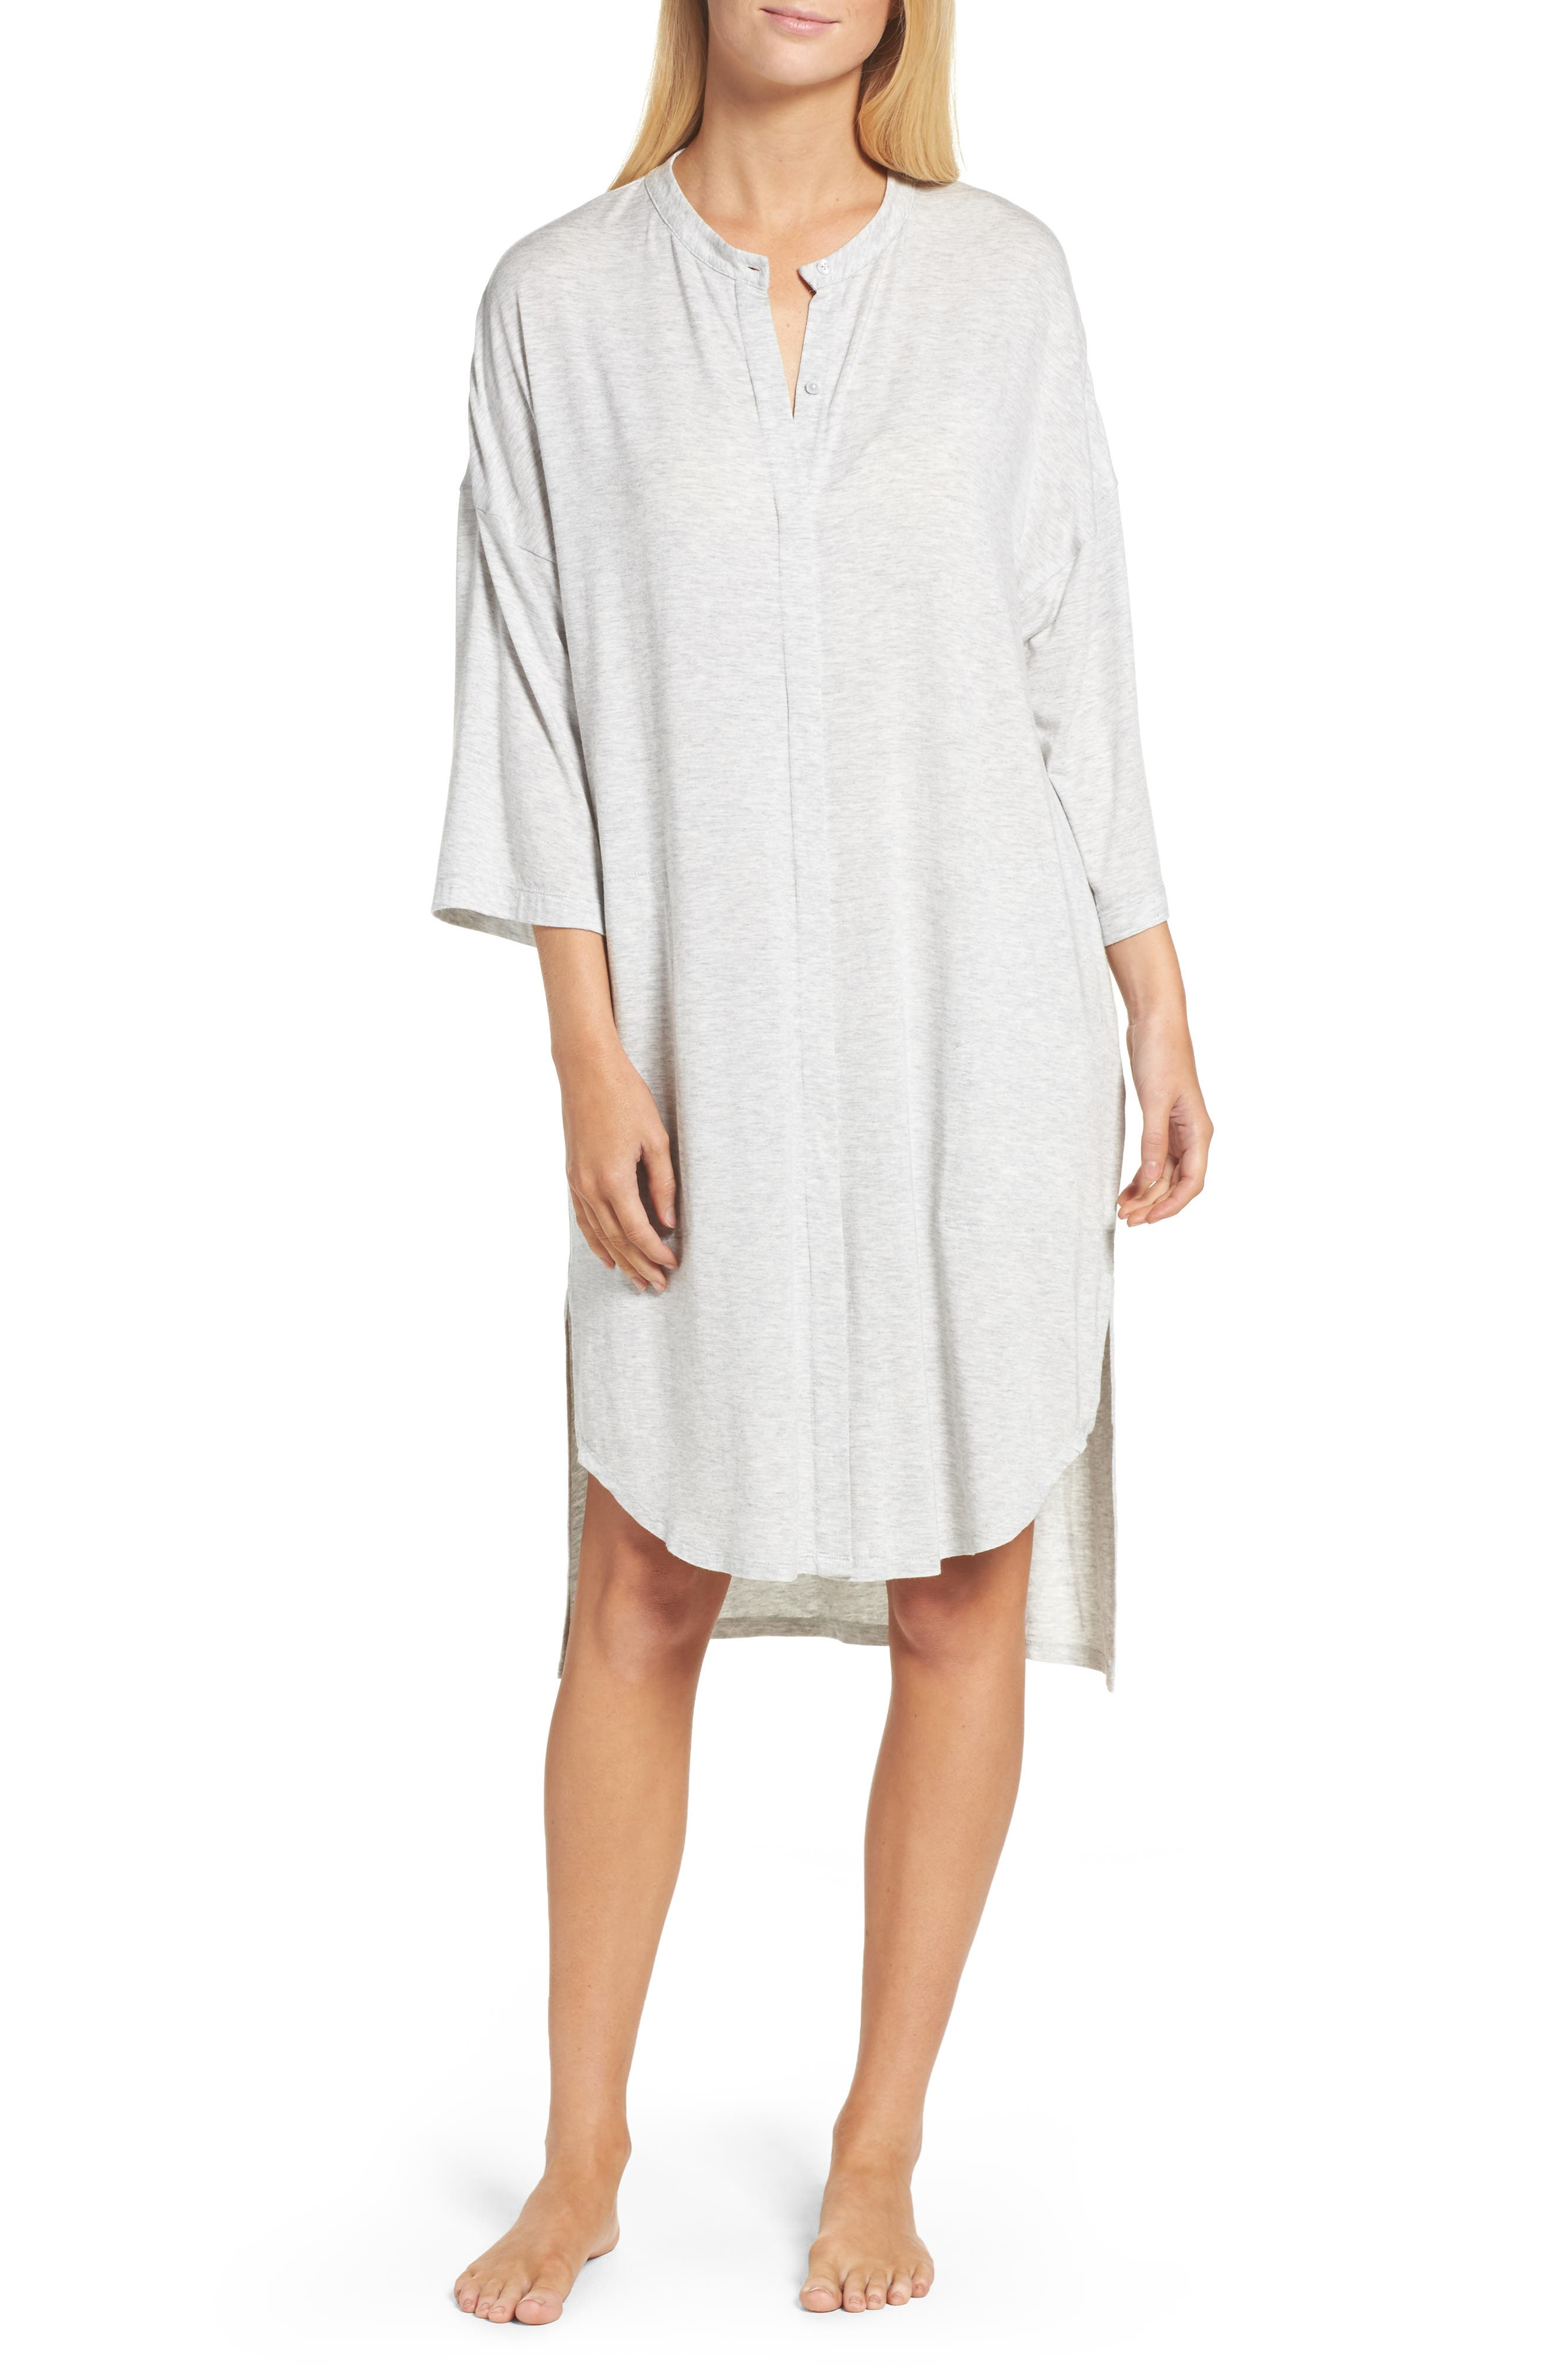 DKNY Knit Sleep Shirt